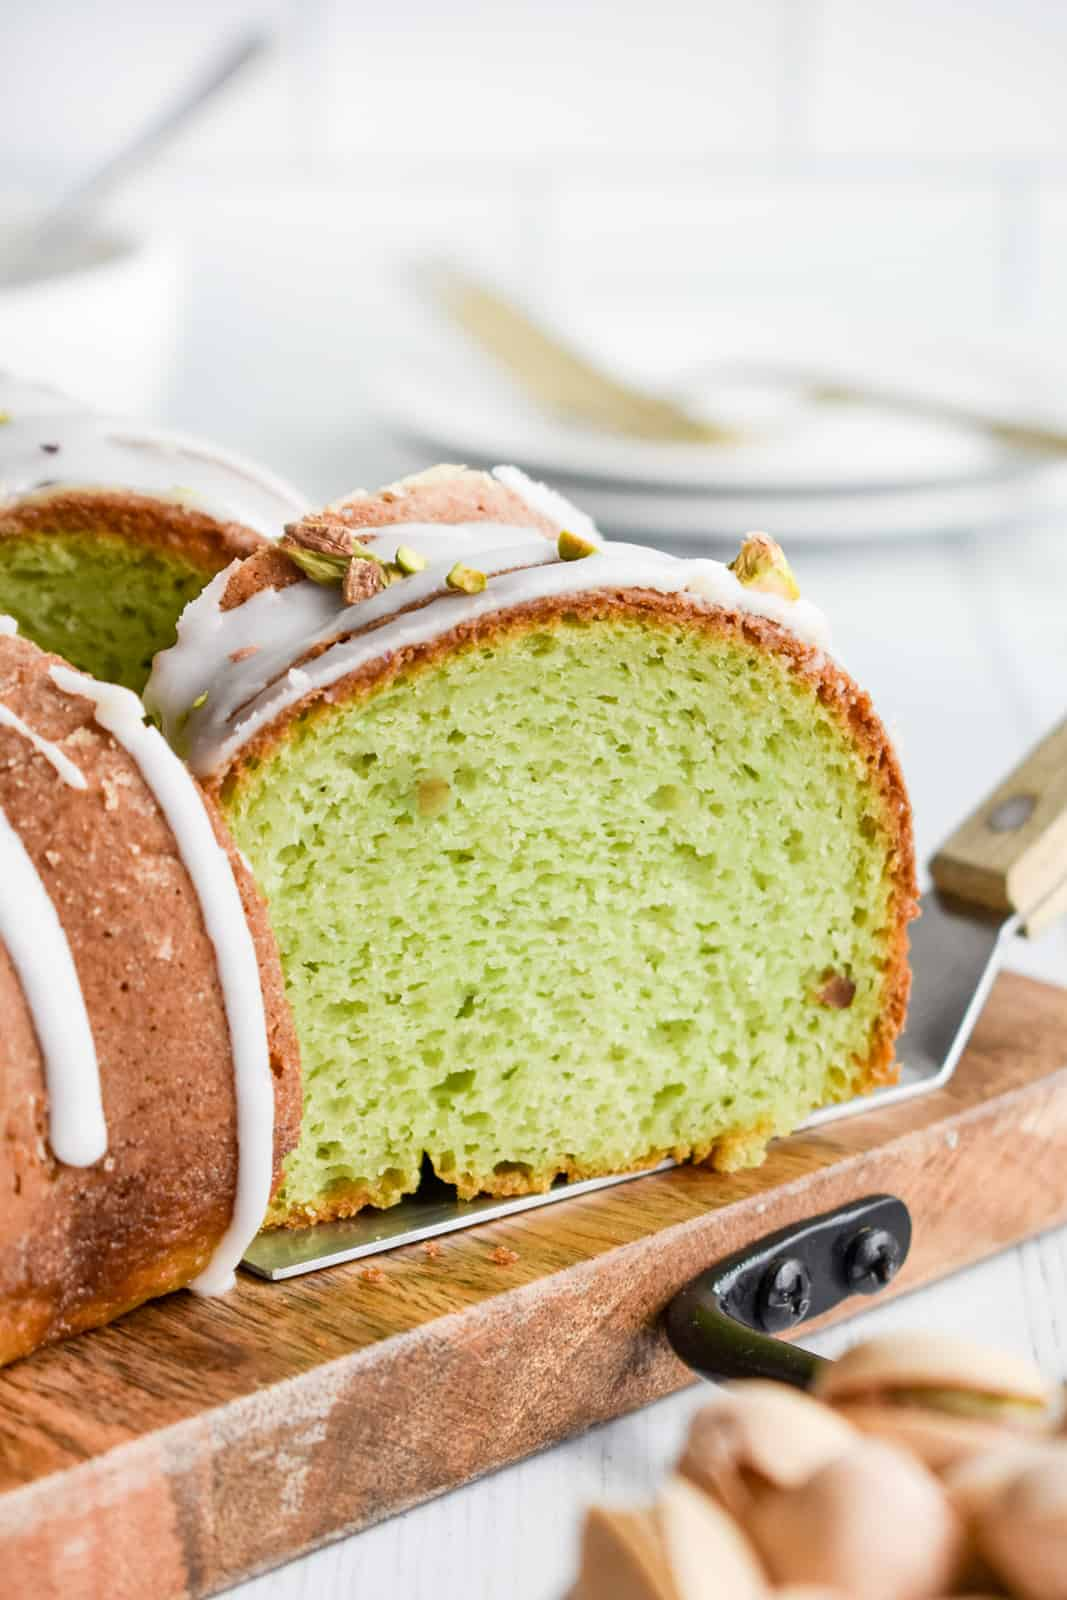 Cake server pulling out a slice of Pistachio Cake